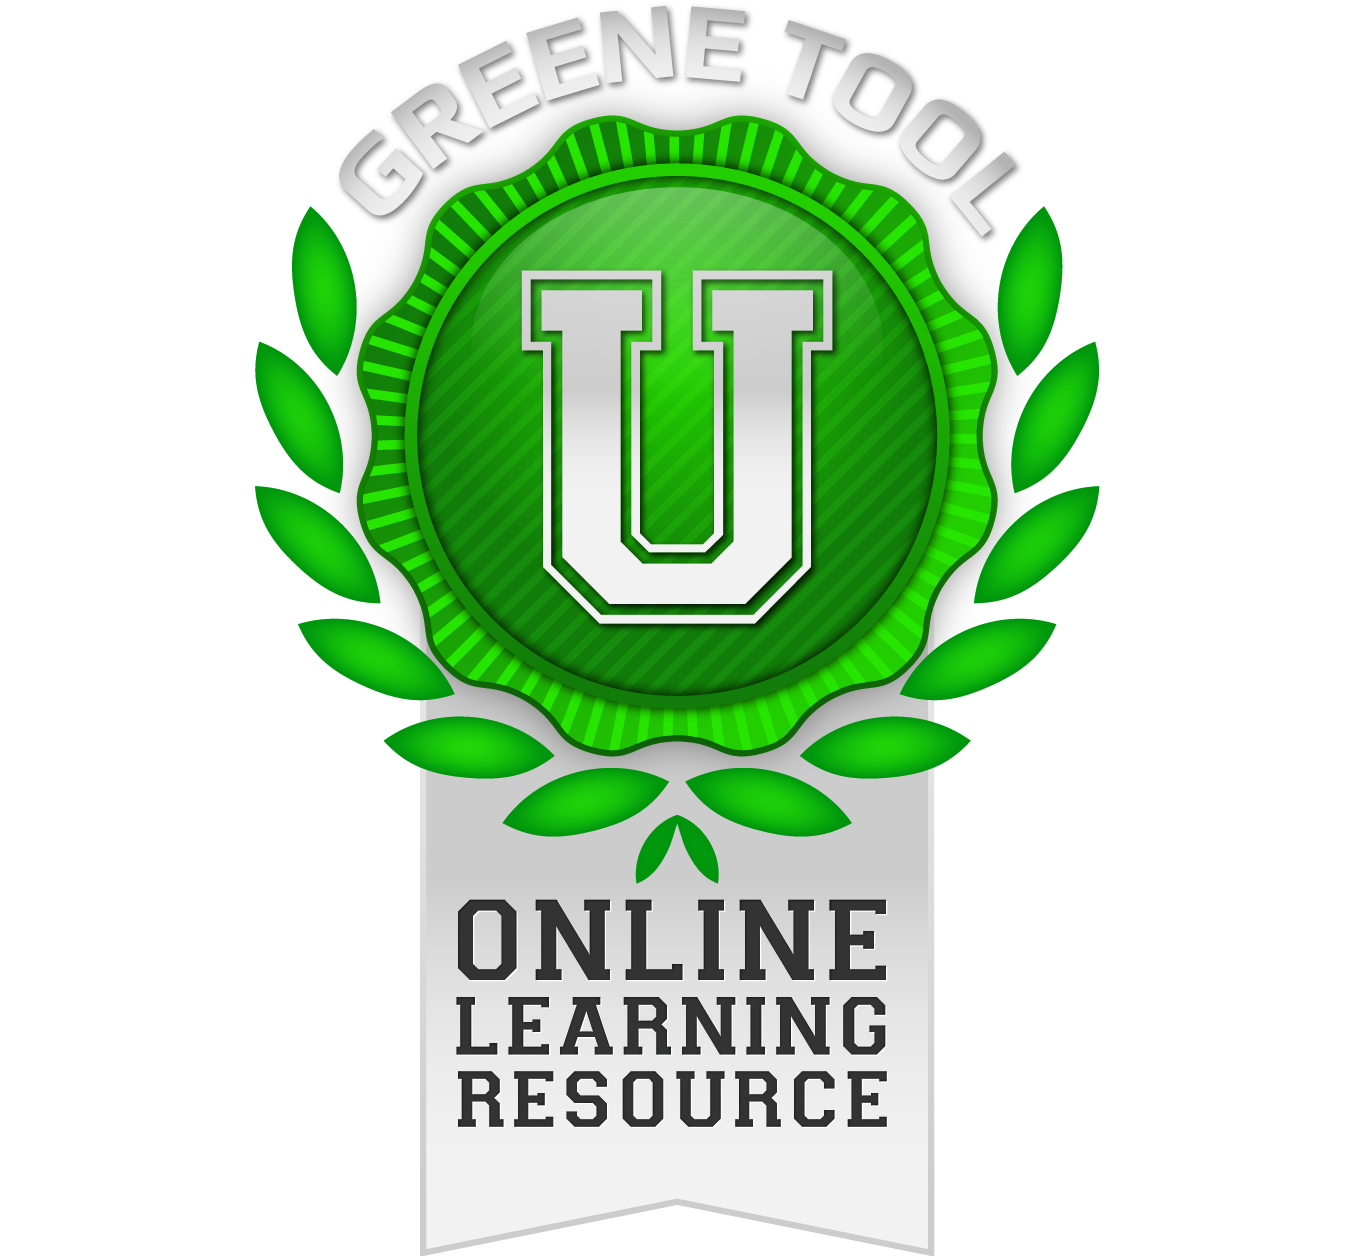 GTU is an online machining and educational resource